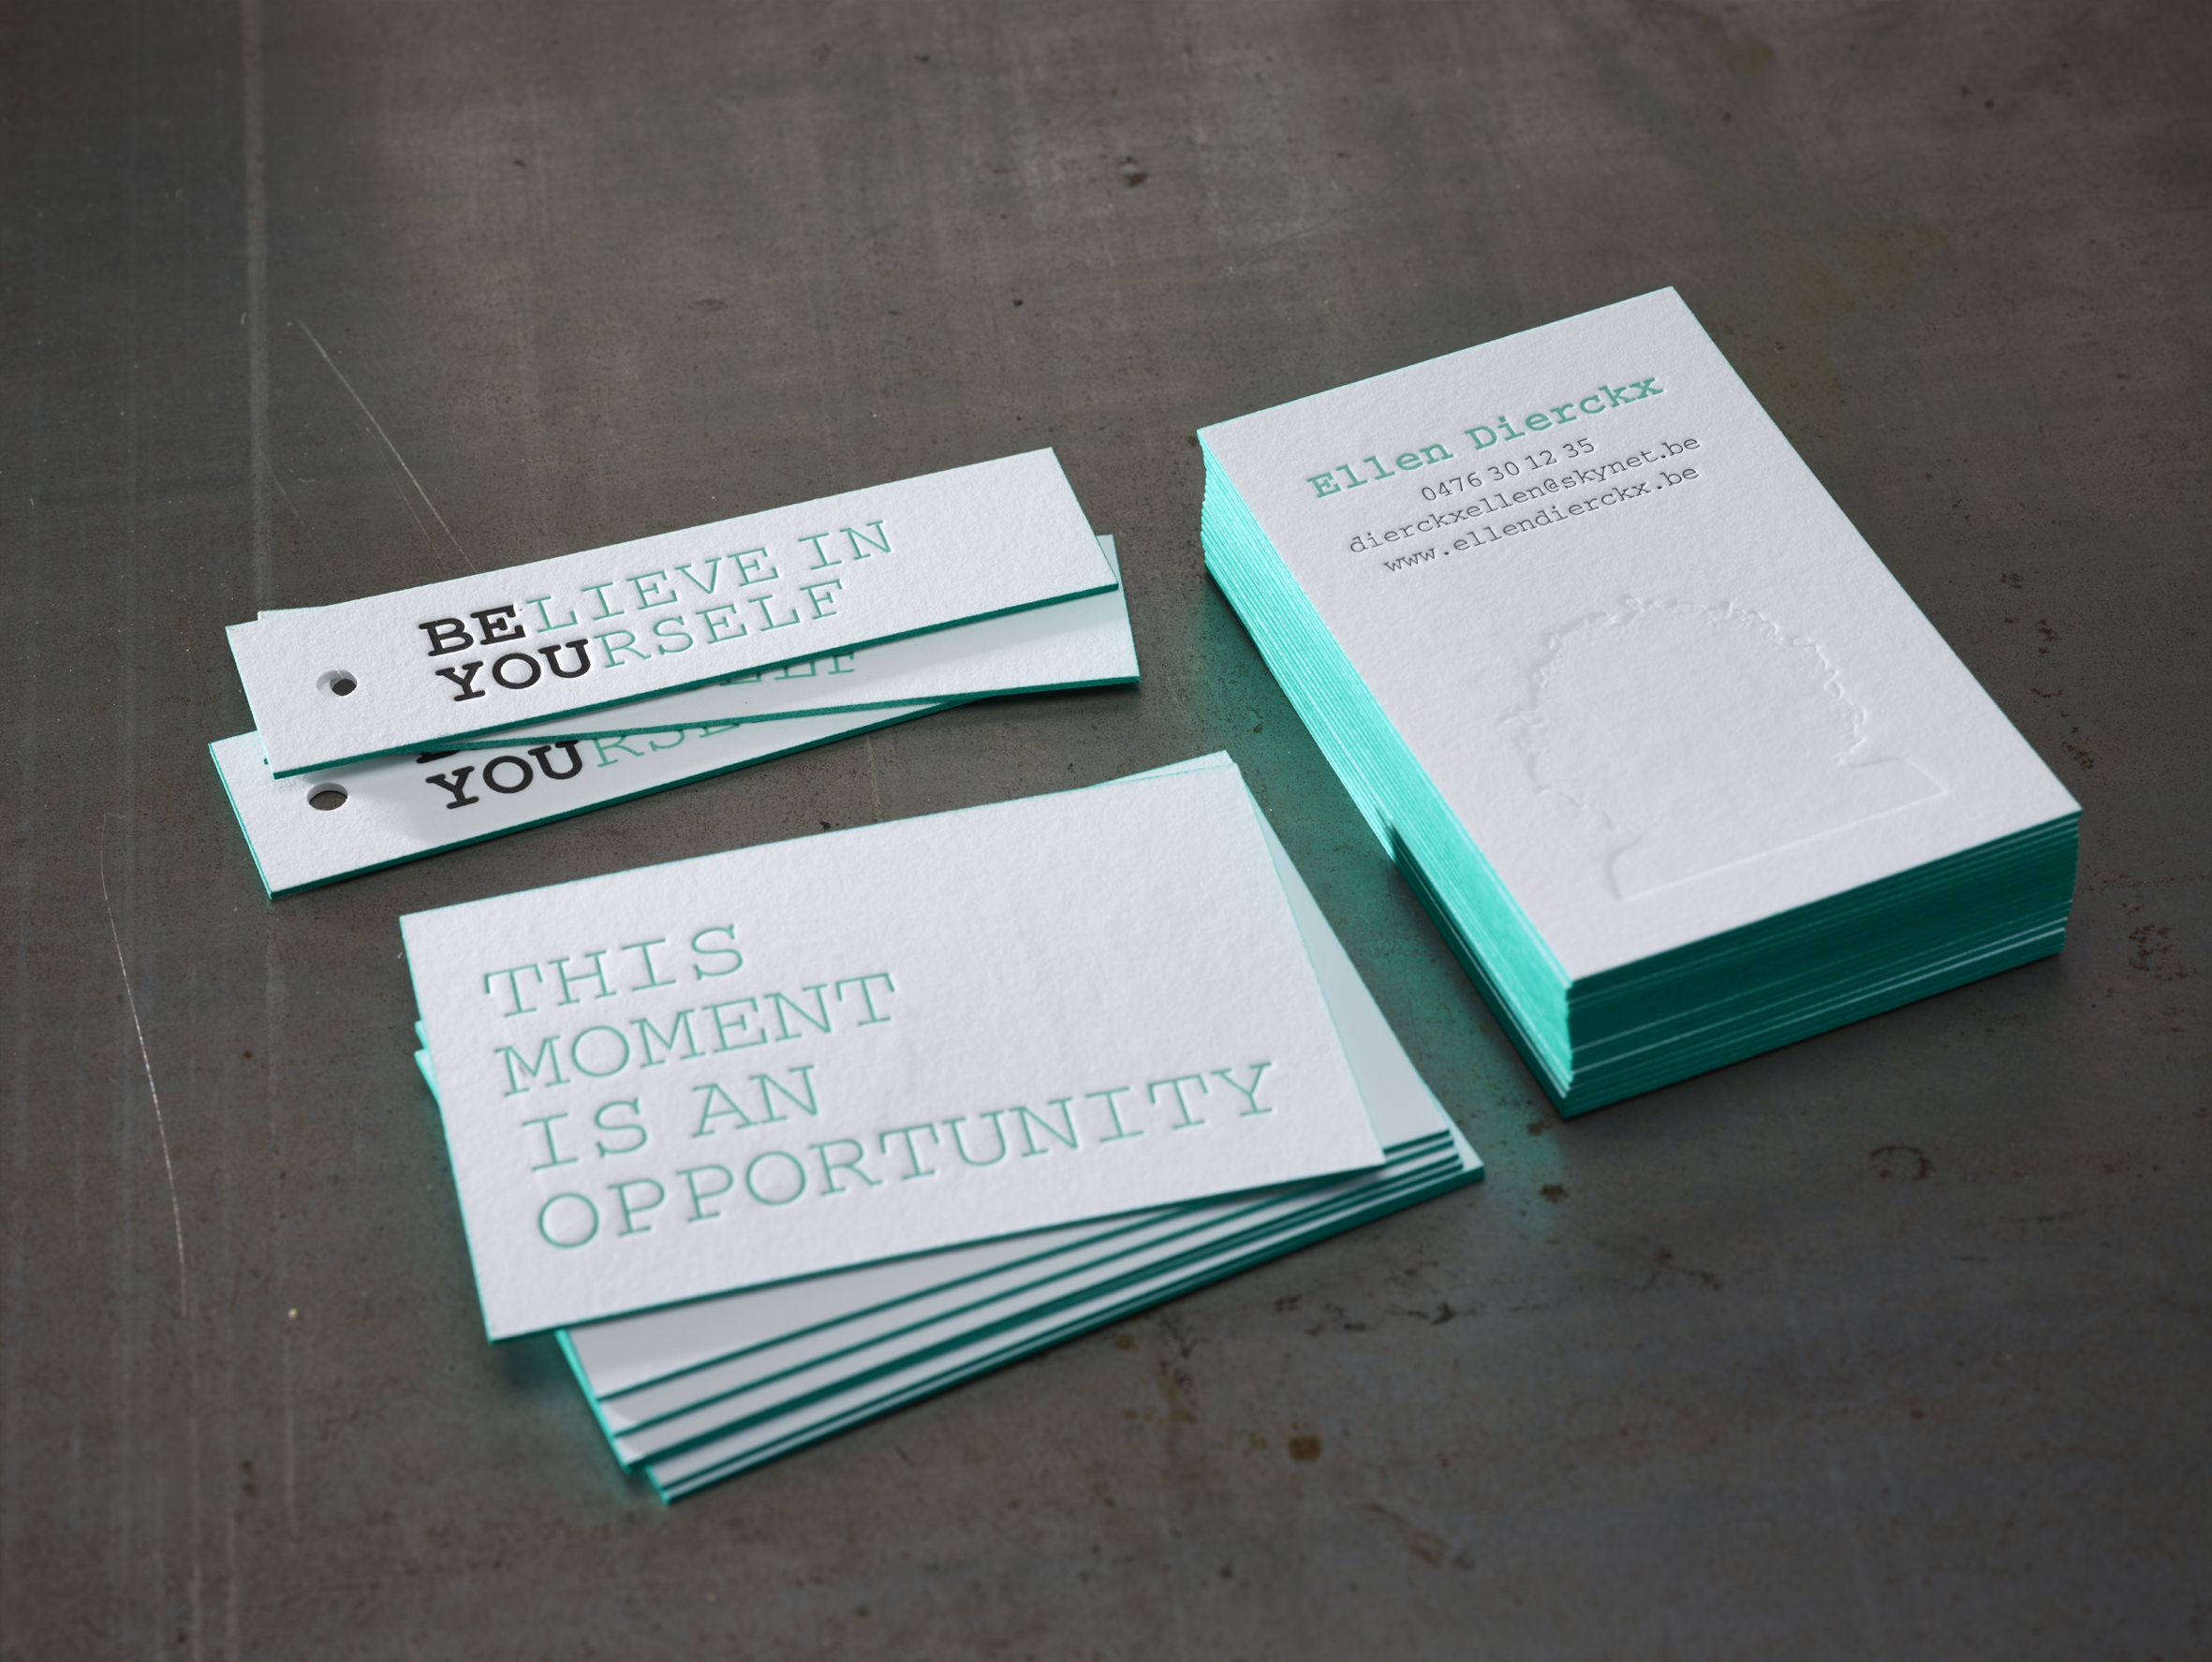 Letterpress business cards and labels with edge coloring mint green letterpress business cards and labels with edge coloring mint green proudly printed in belgium by reheart Image collections